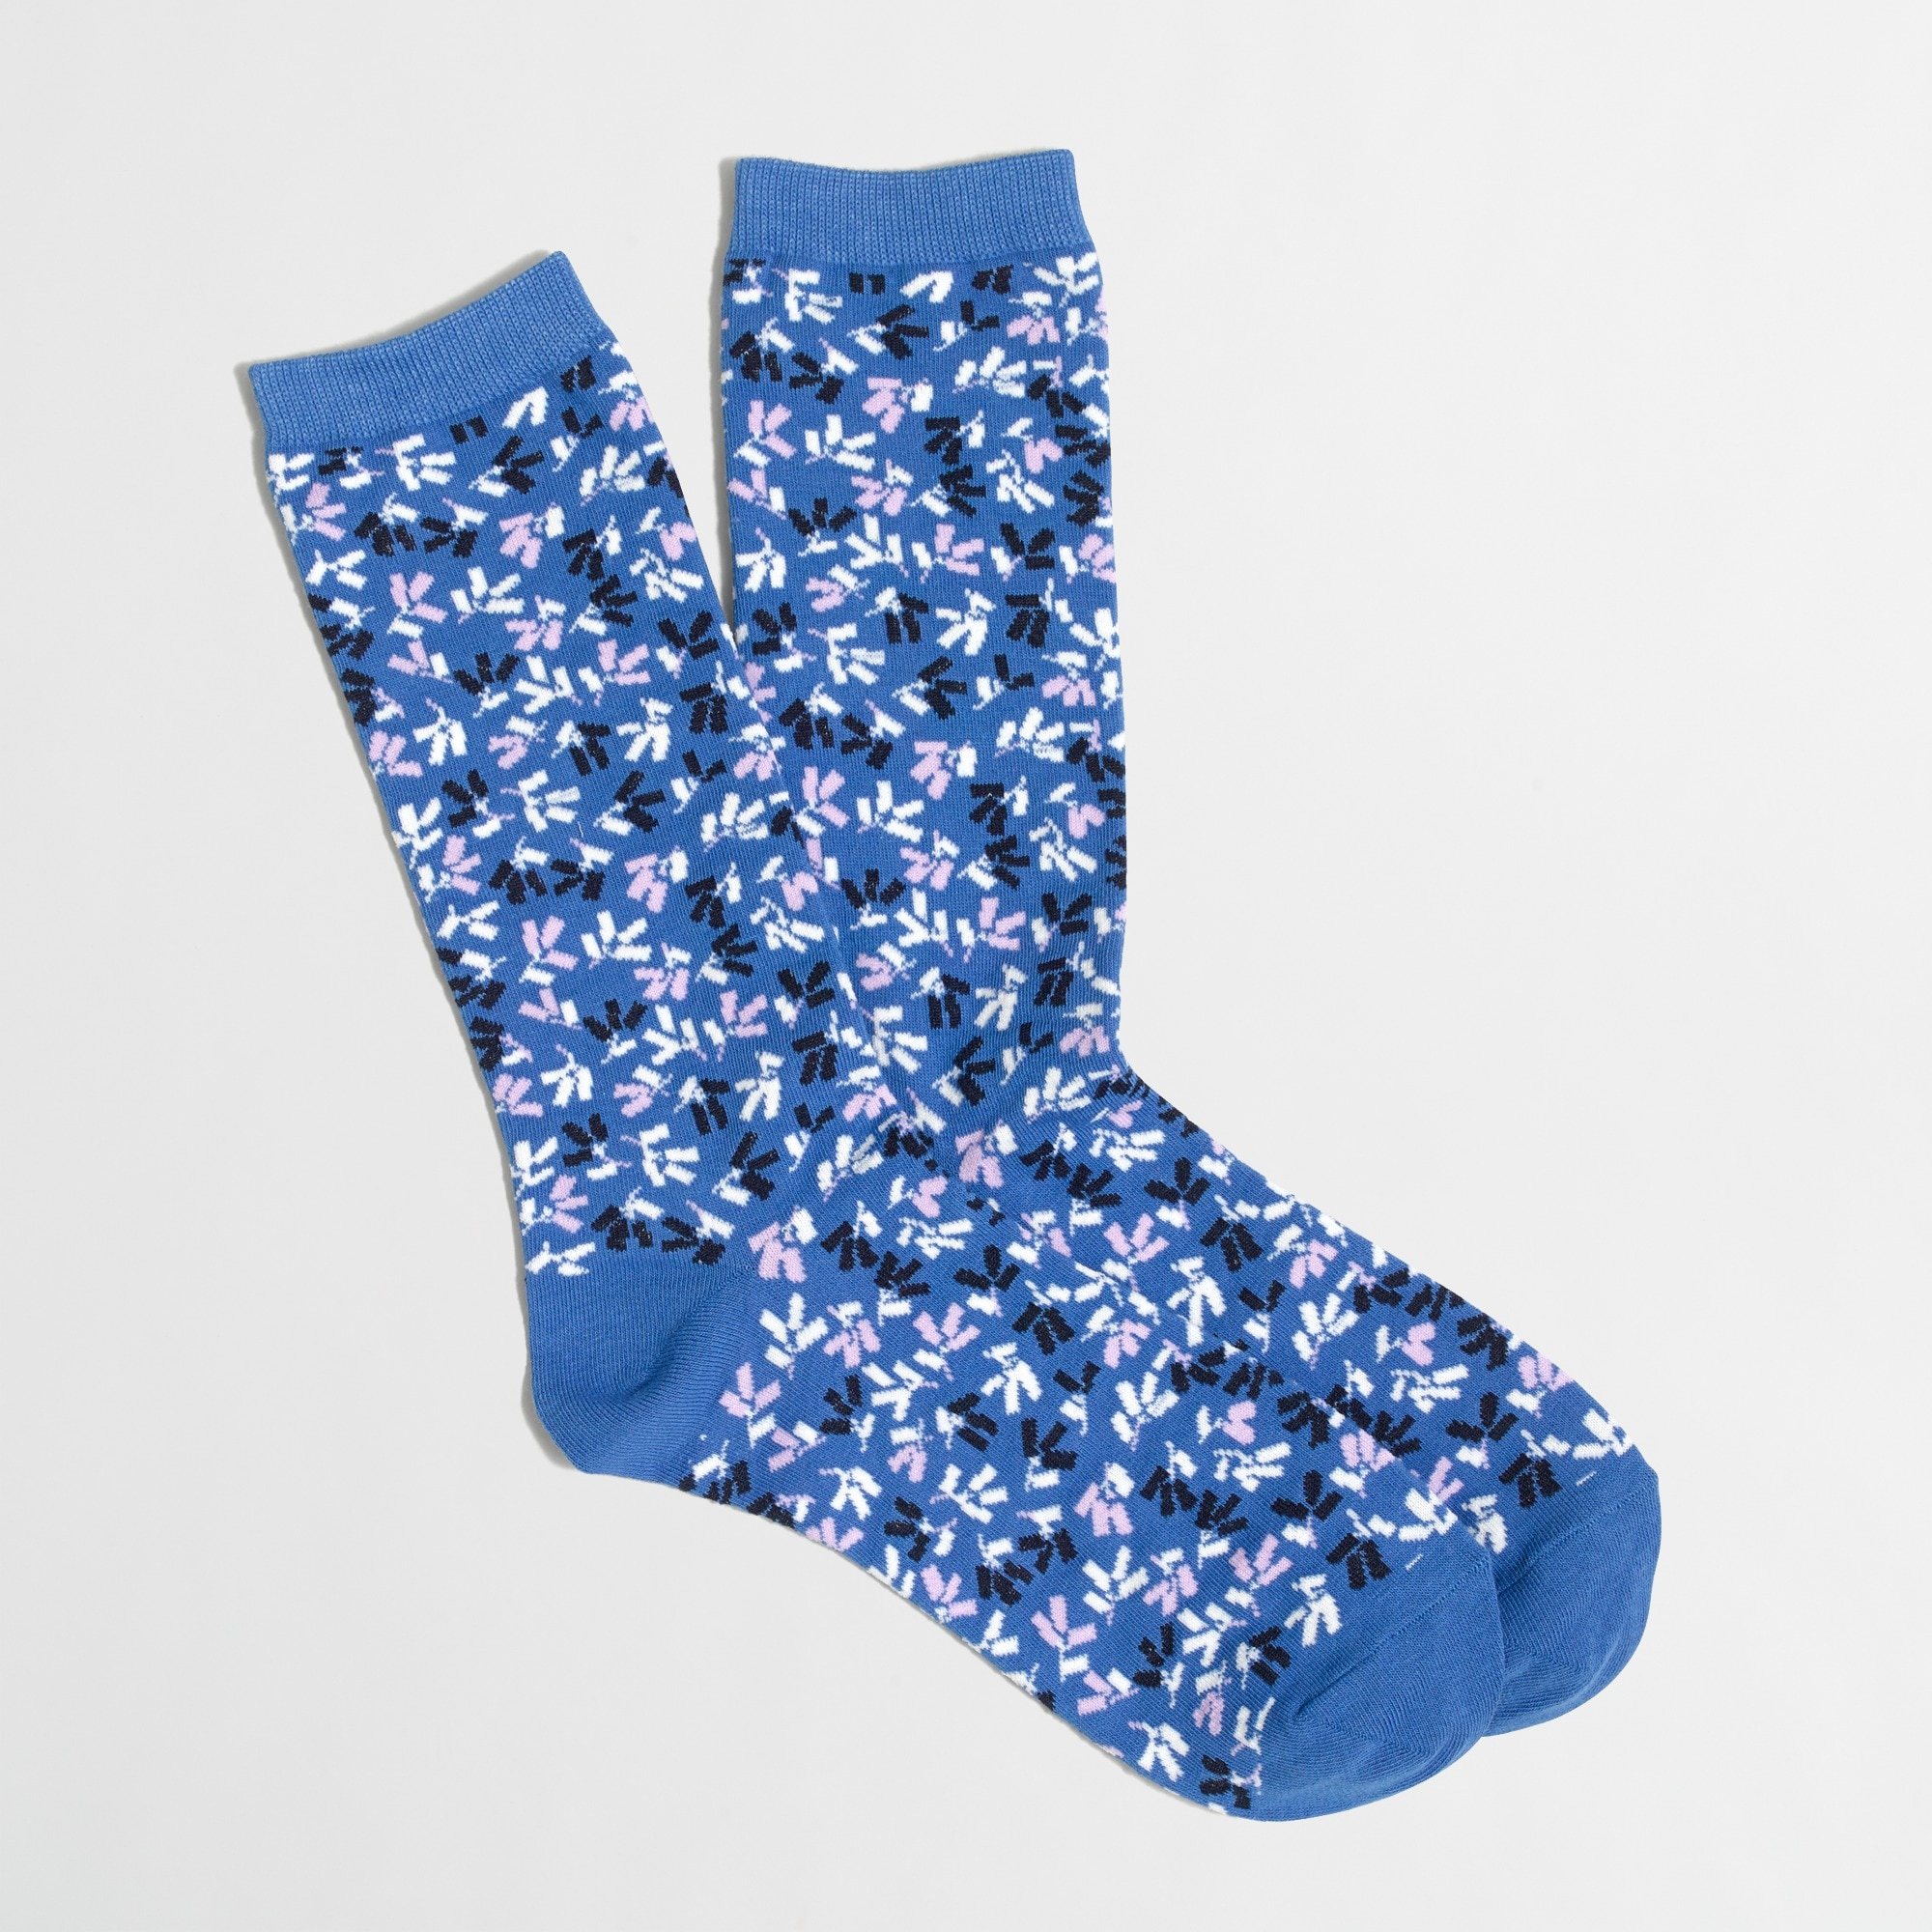 Firecracker trouser socks